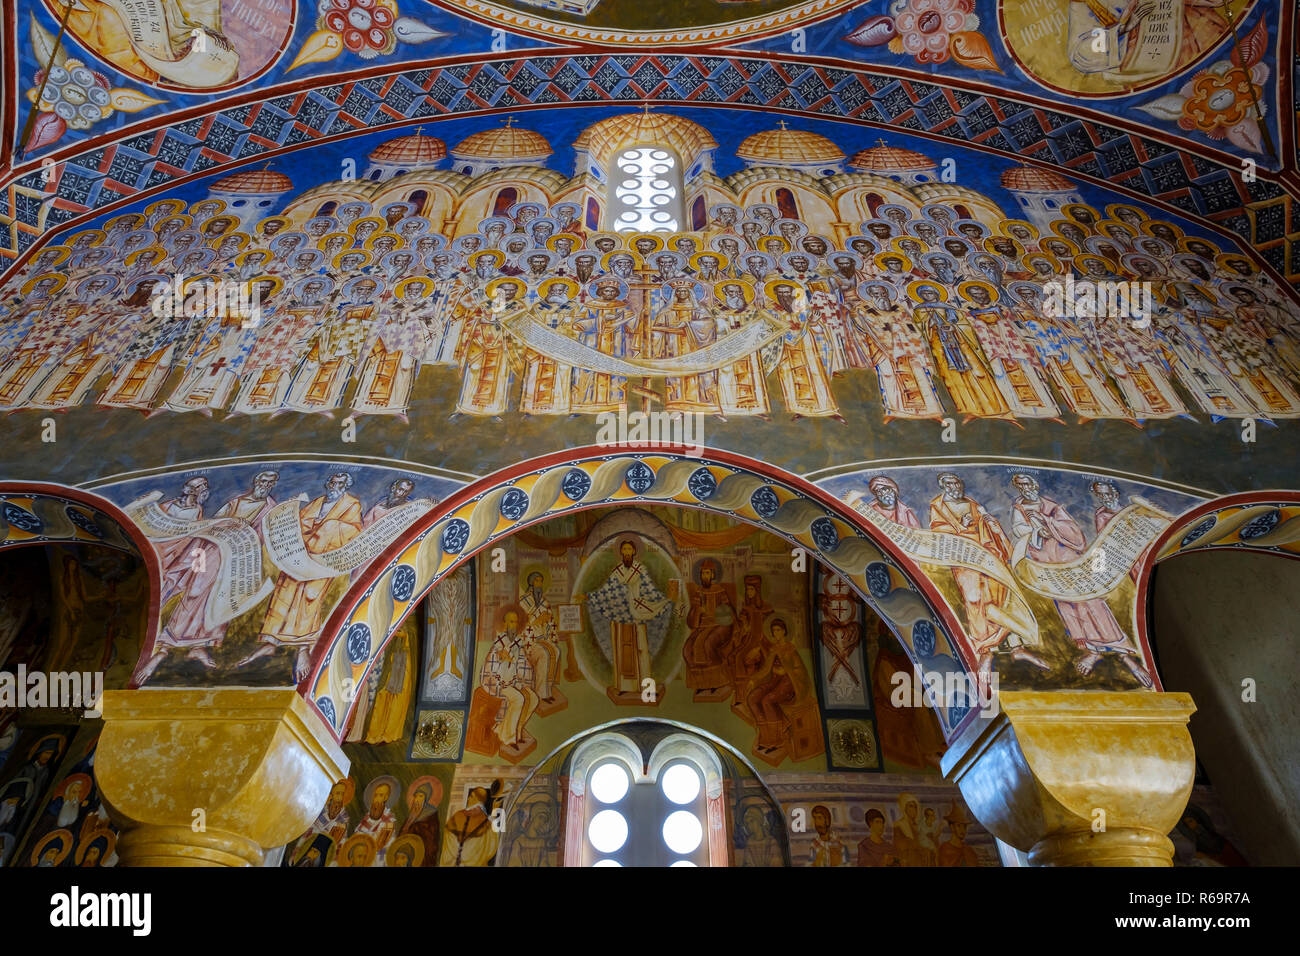 Wall painted with artistic frescoes, interior, cathedral St. Johannnes Vladimir, Hram Svetog Jovana Vladimira, bar, Montenegro - Stock Image